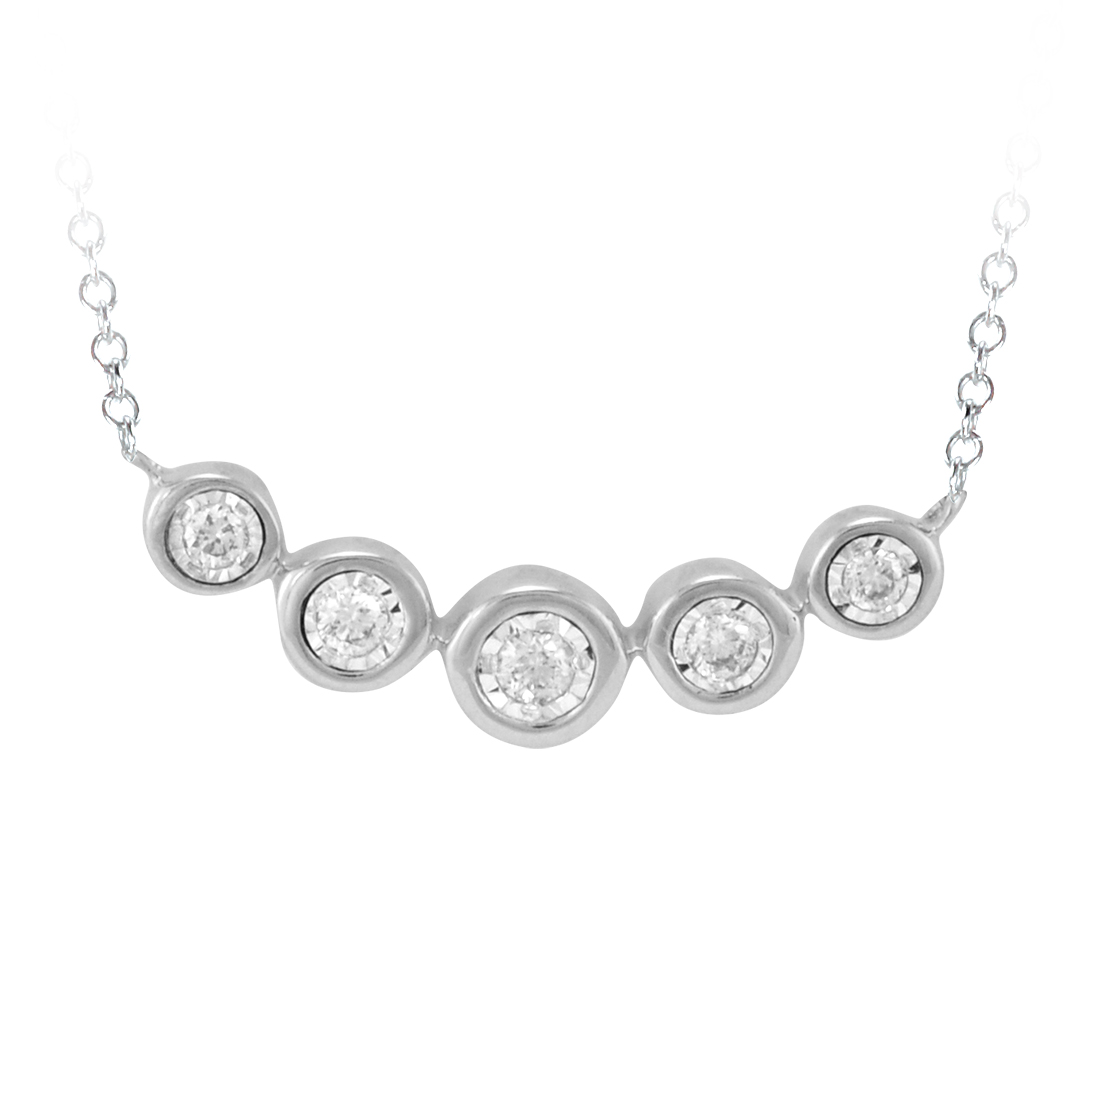 White Gold Bar Style Diamond Necklace